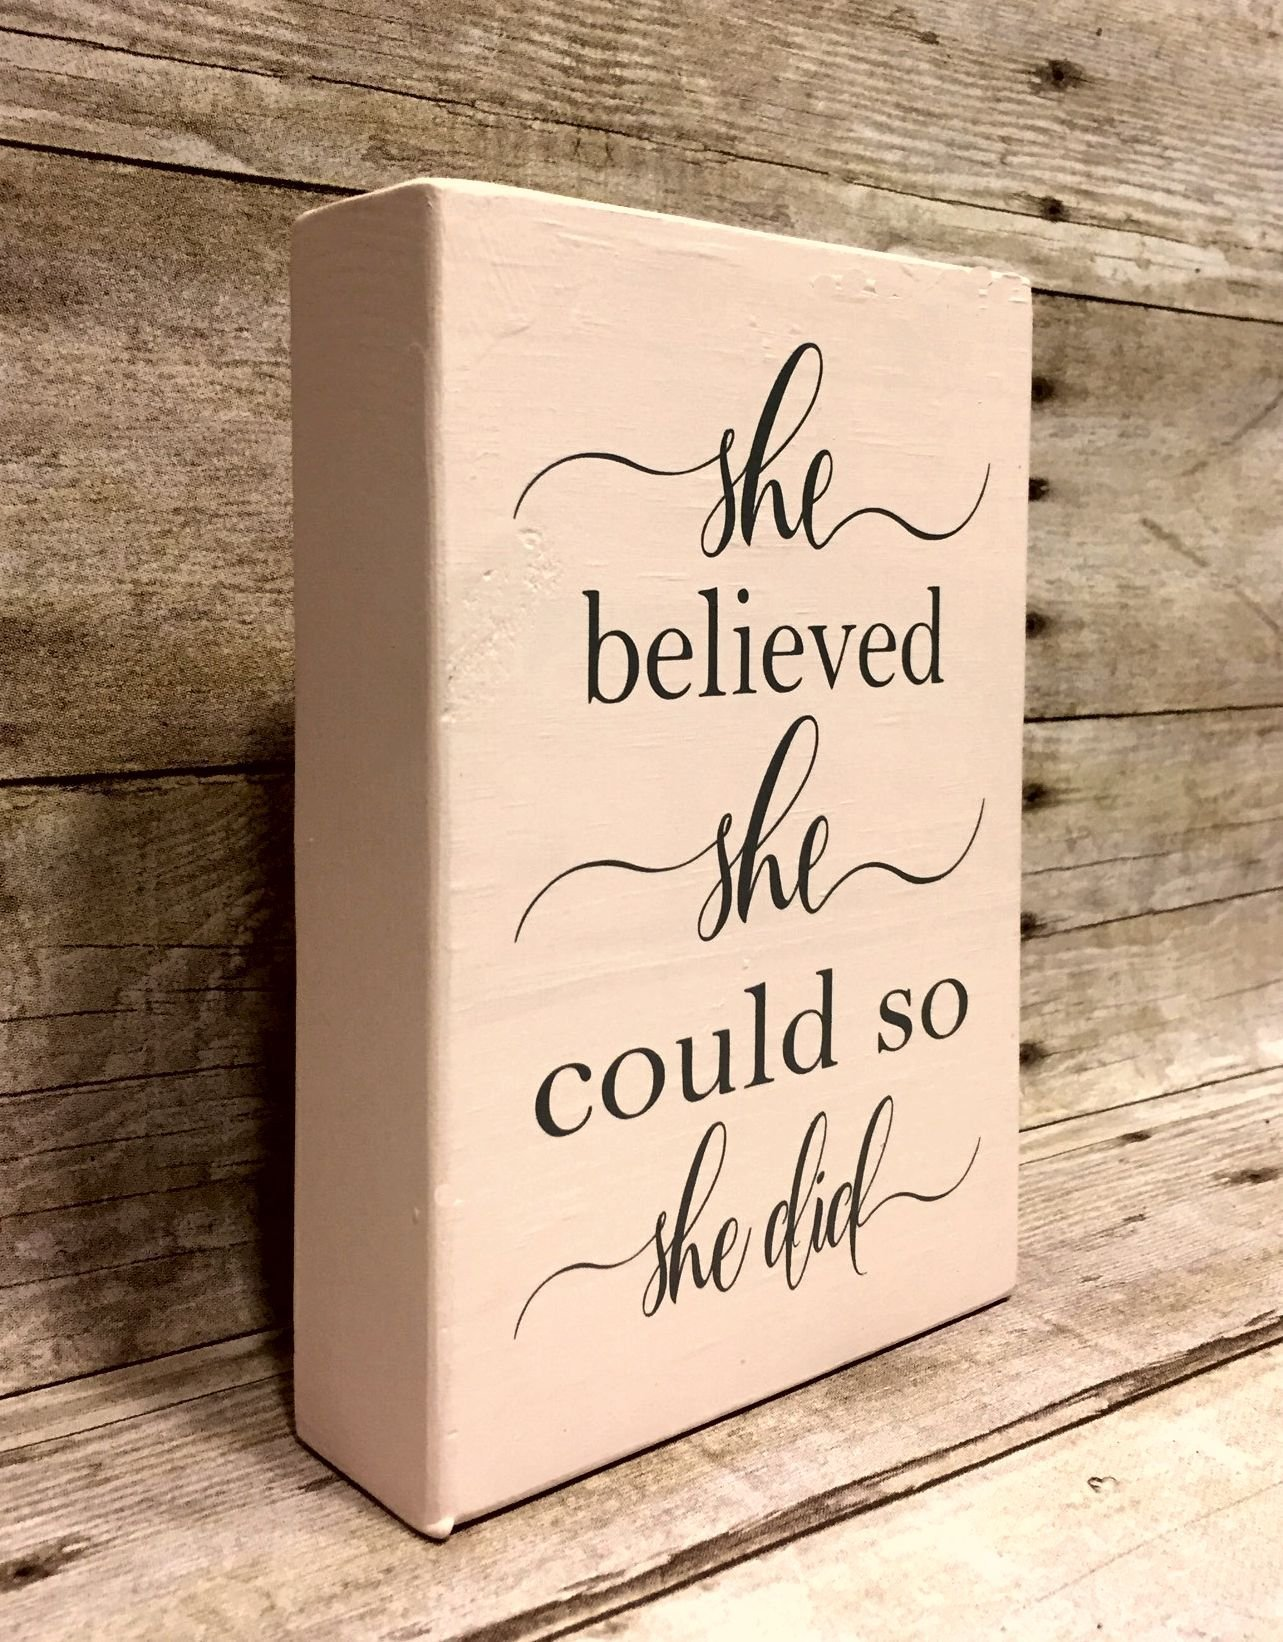 She Believed She Could So She Did Decor / Inspirational Gifts For Girls / 5''x7'' Wood Block Sign / Your Choice Of Colors by The Word Sister (Image #2)